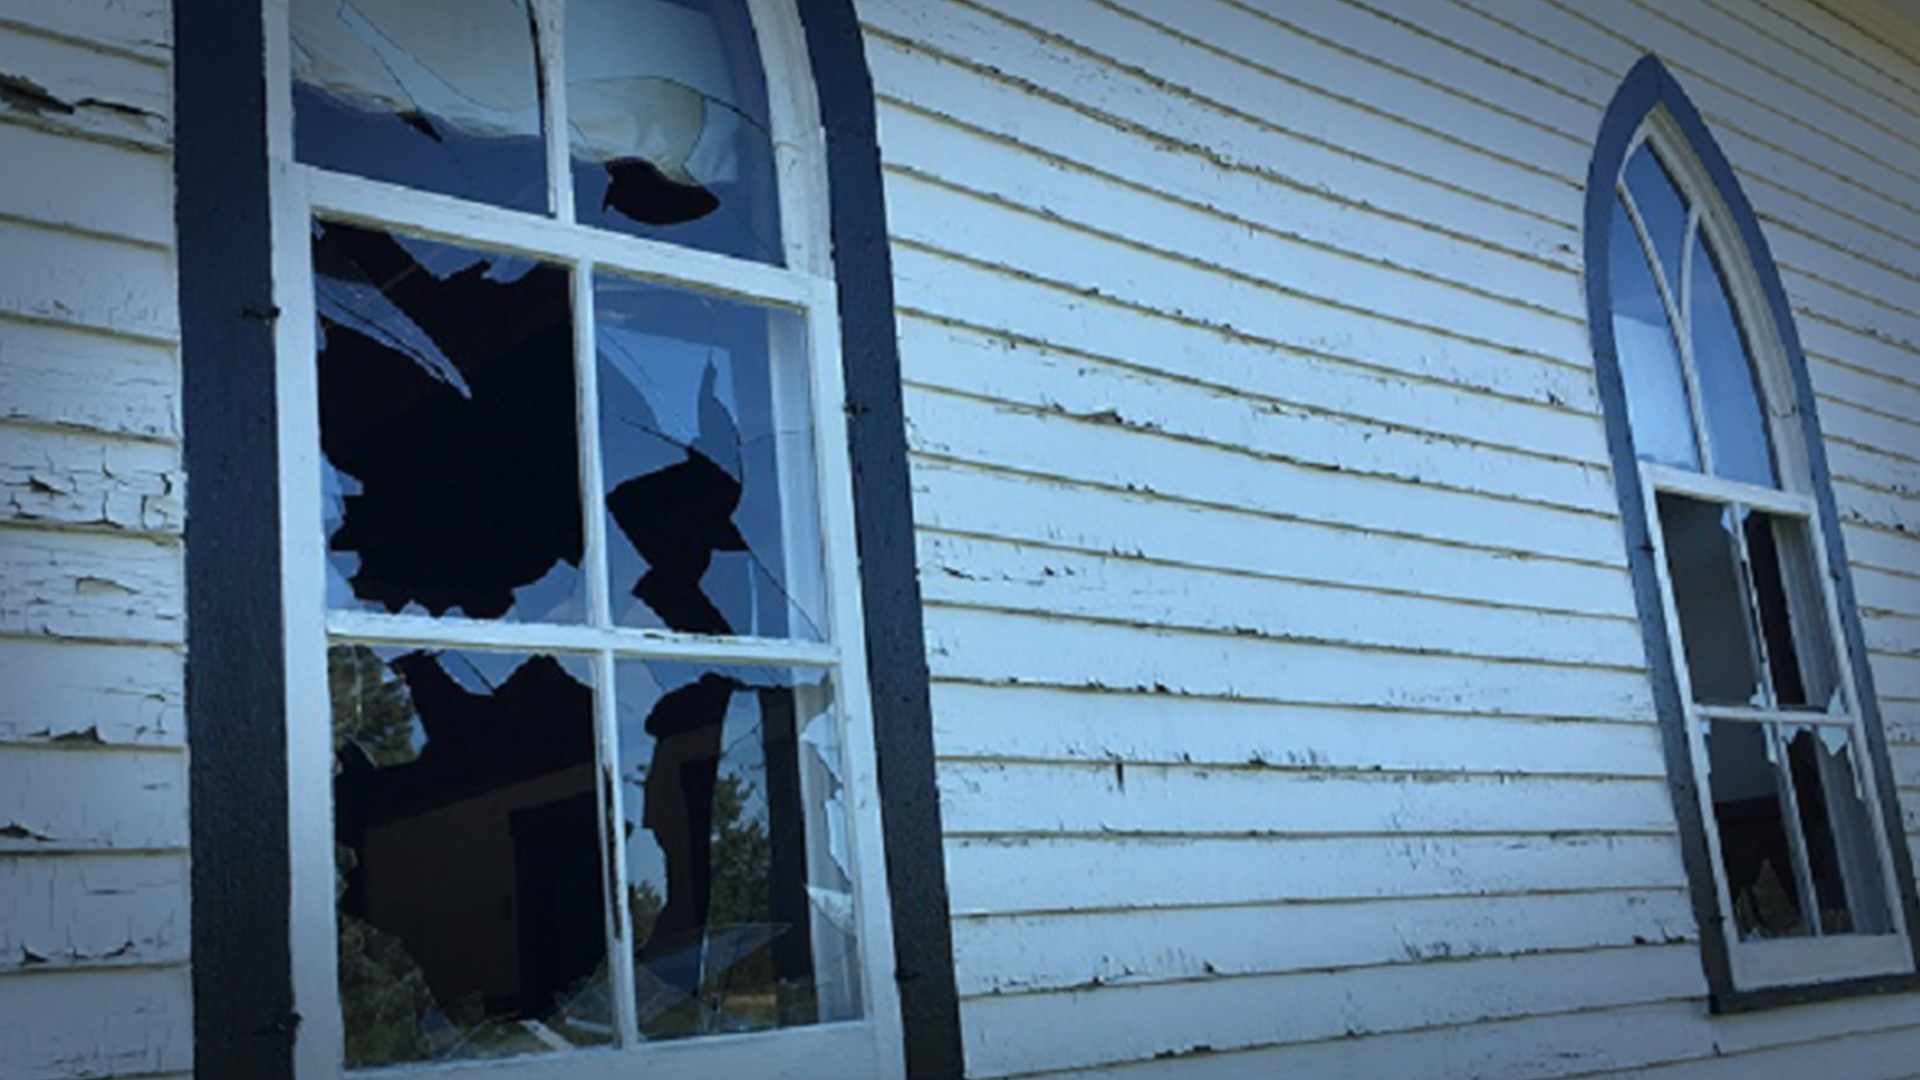 Residential school protest reportedly behind vandalism at decommissioned Mennonite church in Saskatchewan